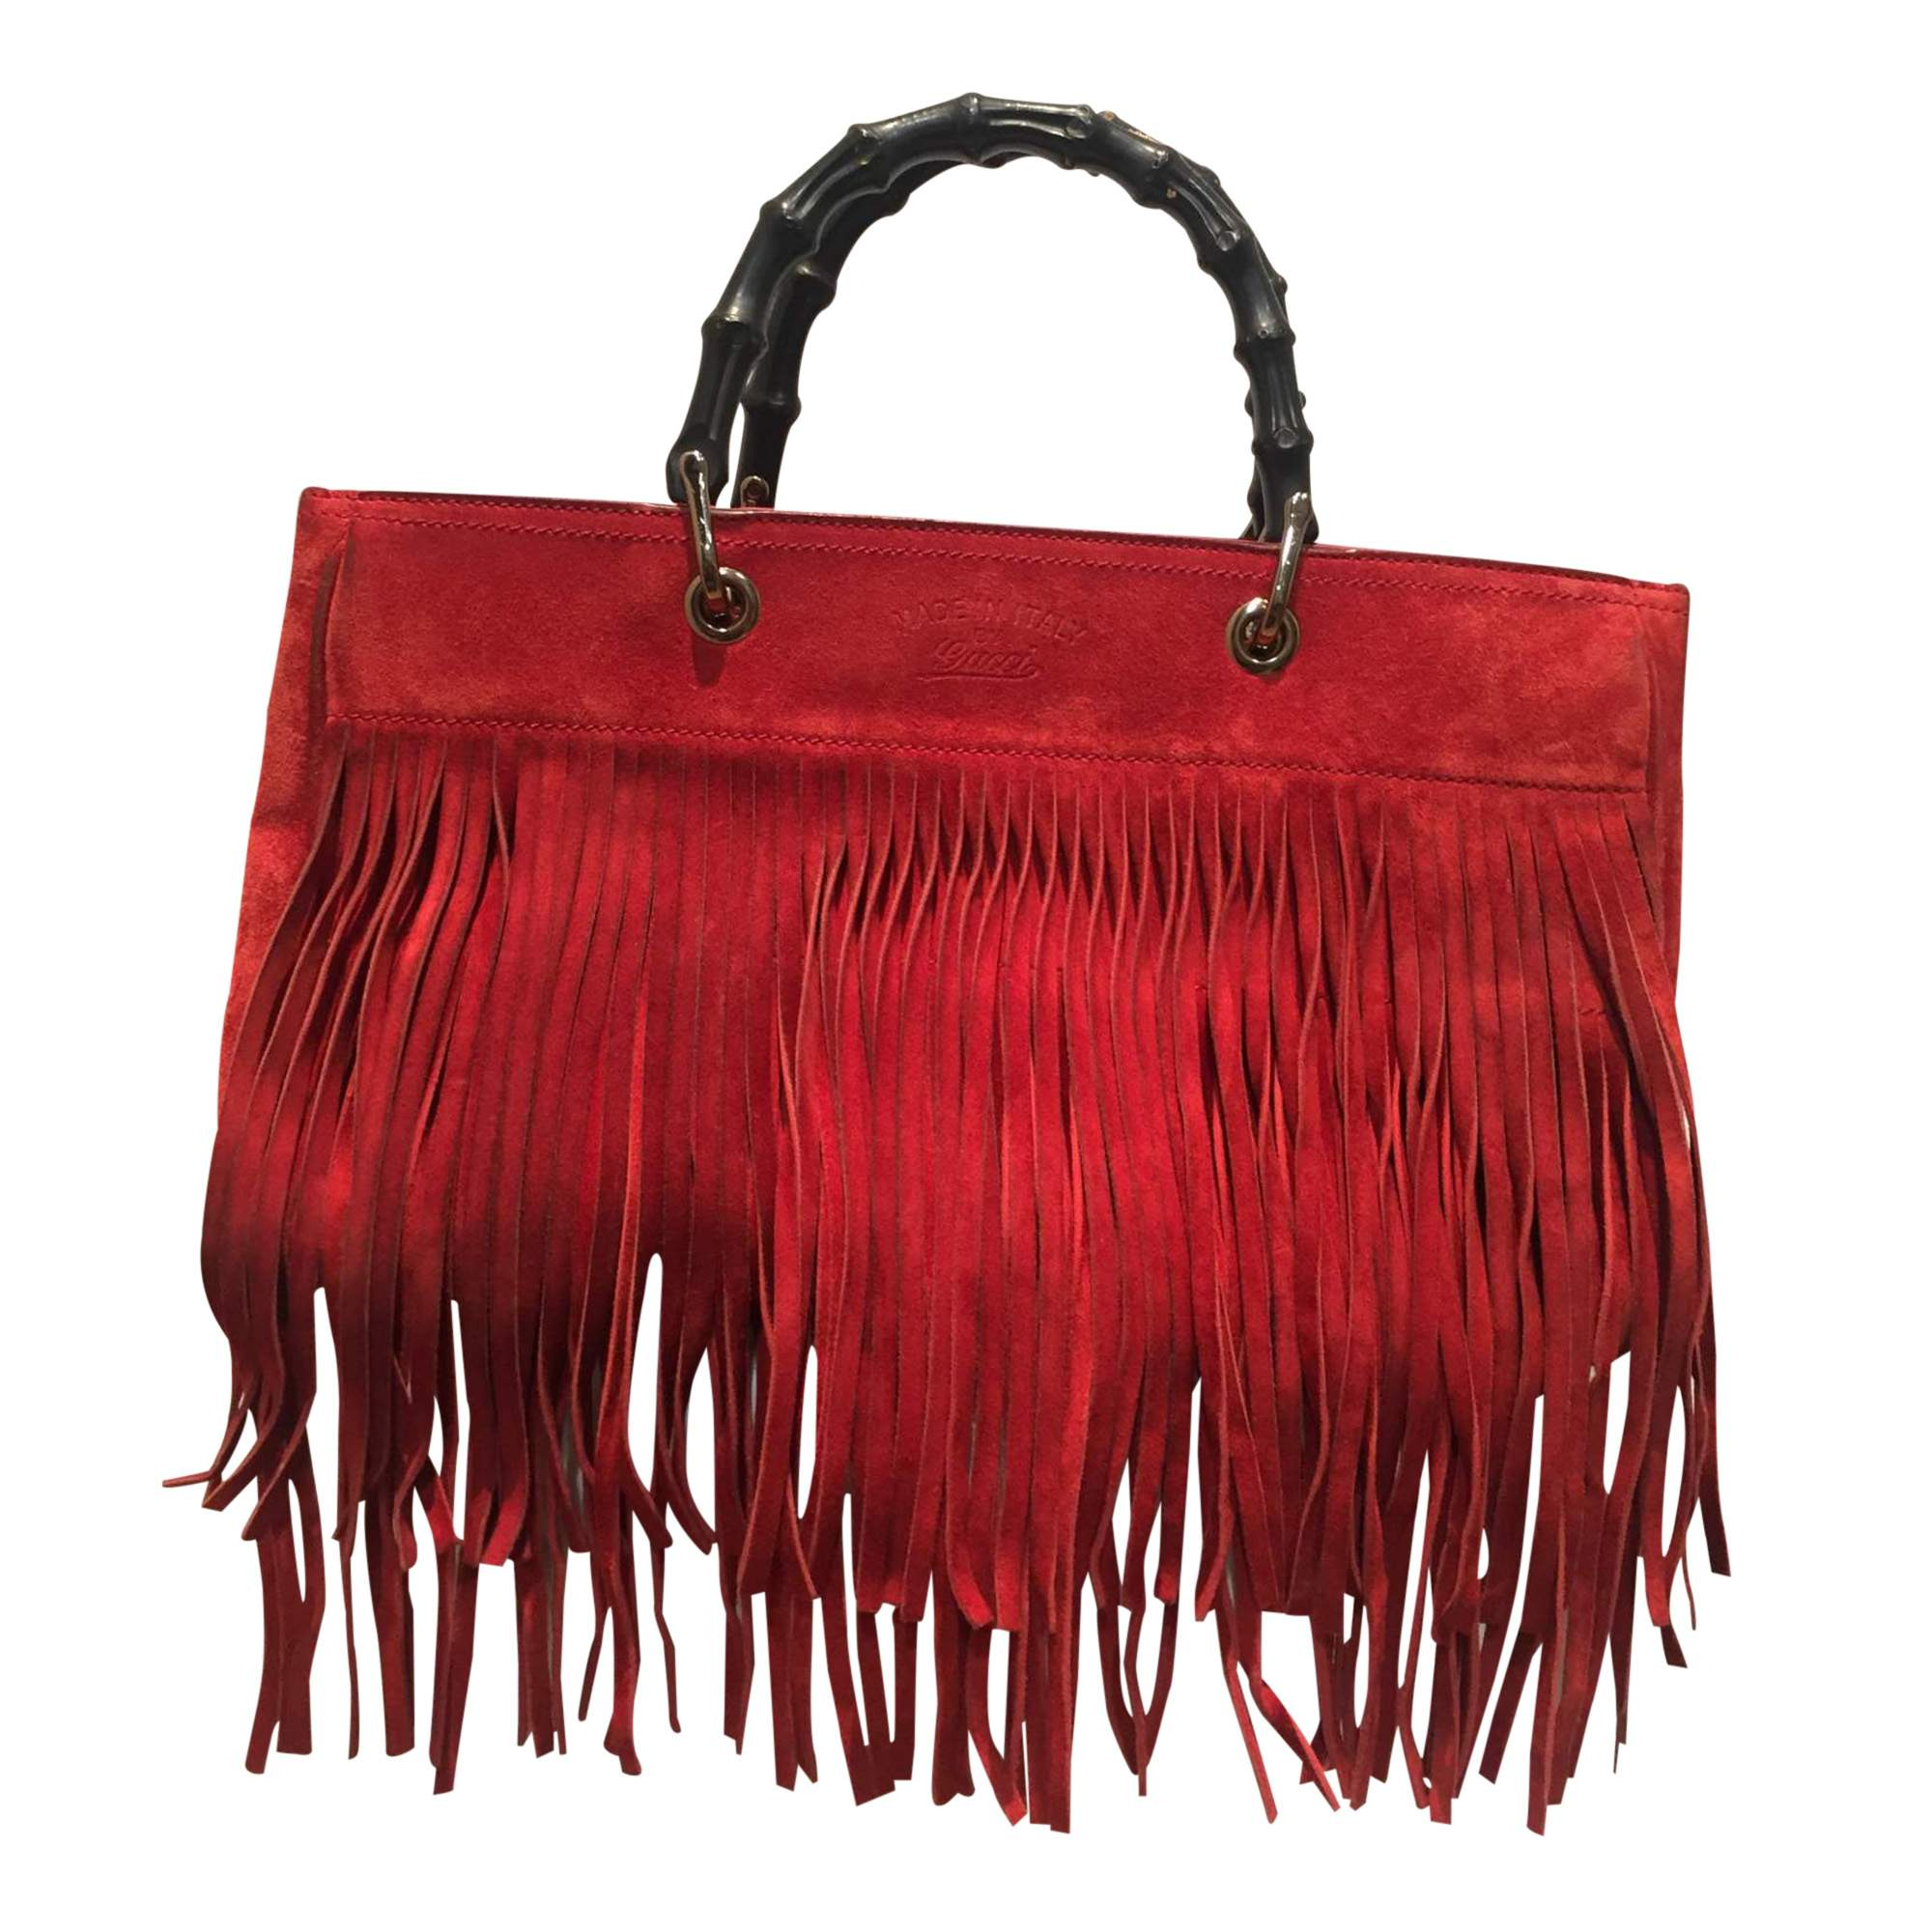 709fc3699d3e Gucci Red suede fringe Bag | The Chic Selection